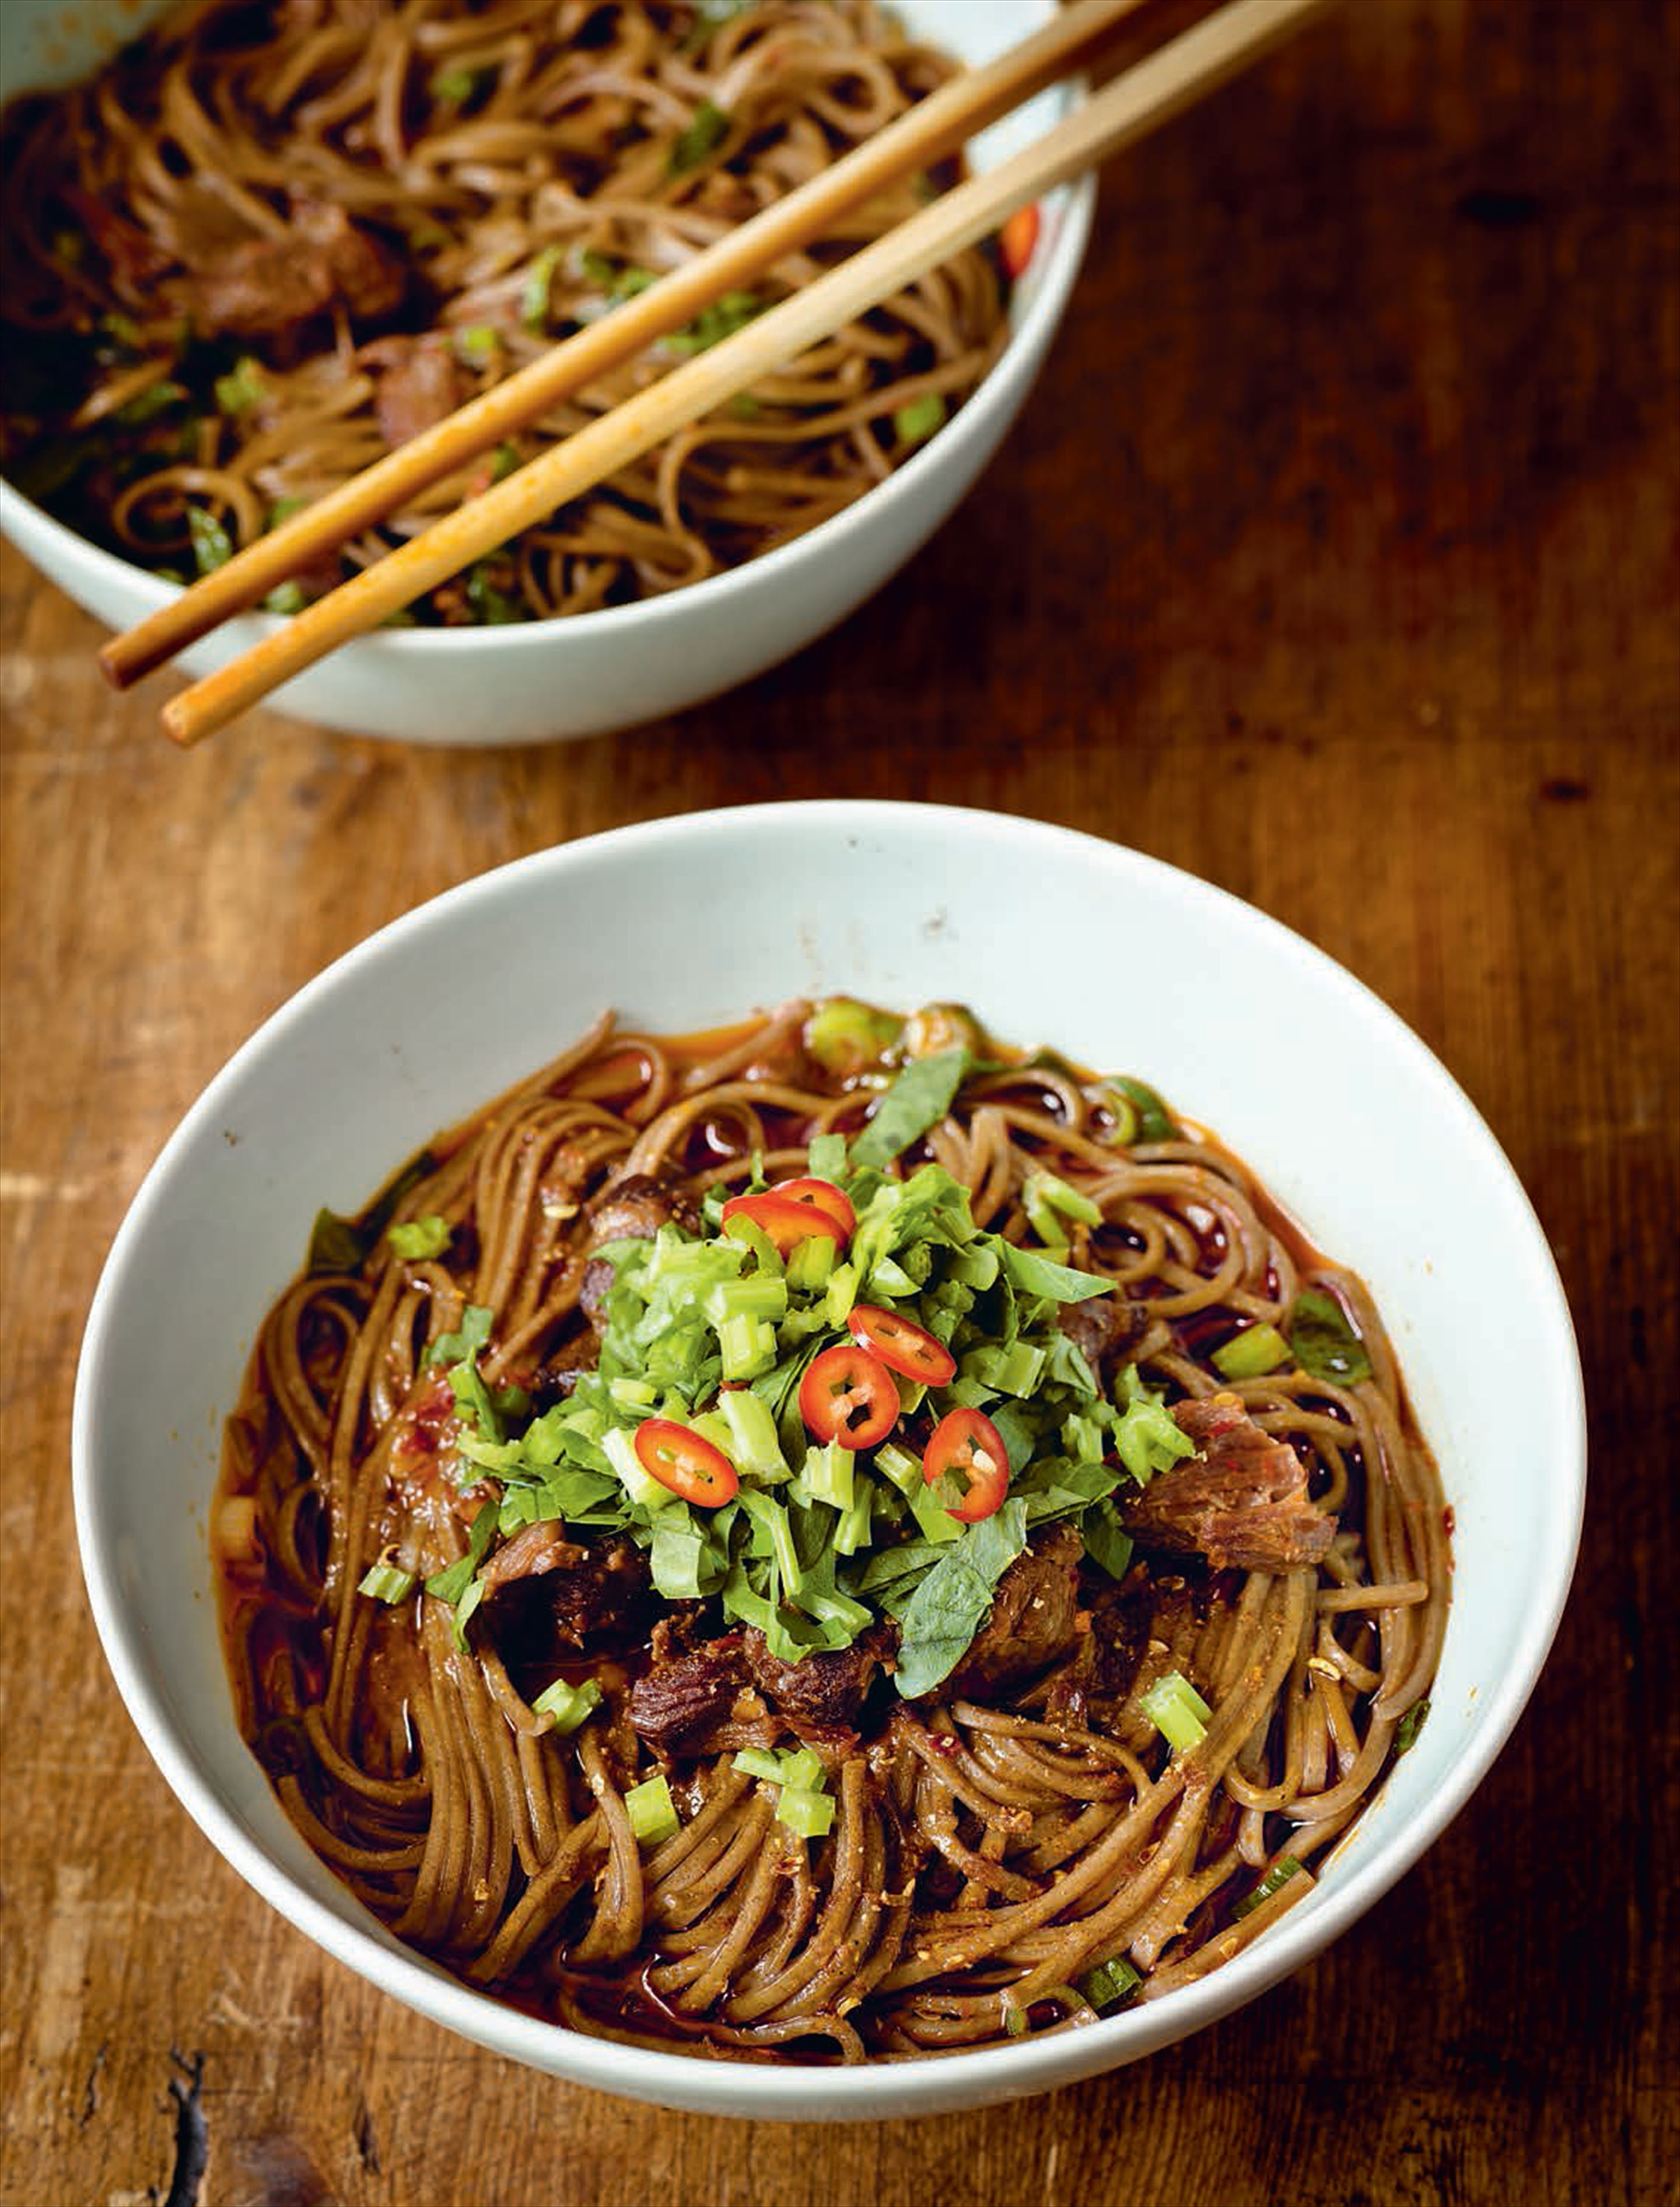 Buckwheat noodles with red-braised beef